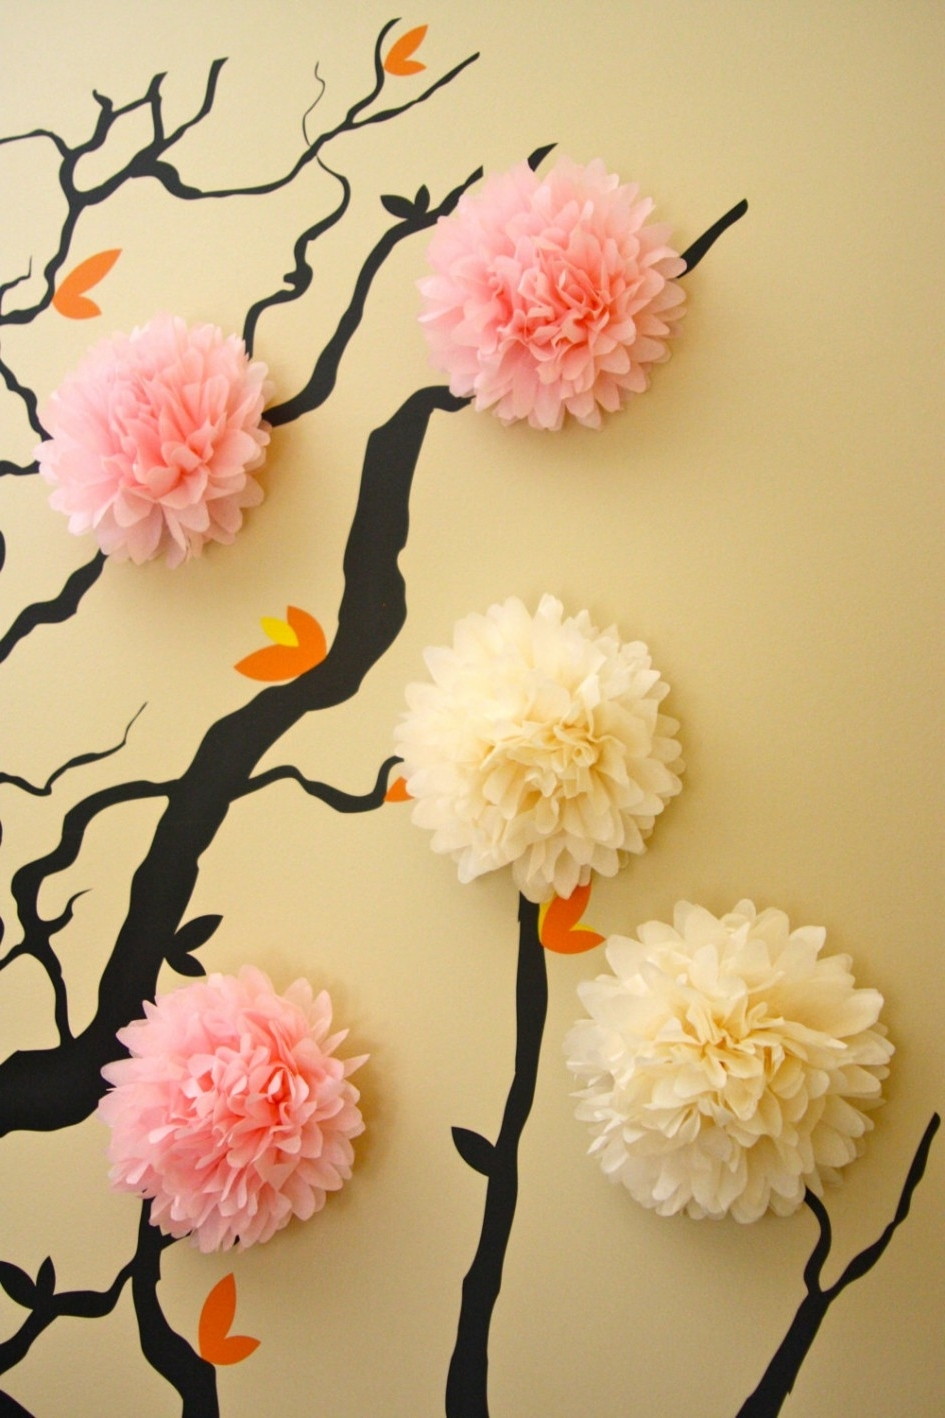 3D Wall Art For Baby Nursery Pertaining To Fashionable Apartment, Cool Flower Cherry Blossom 3D Wall Mural Baby Nursery (View 5 of 15)